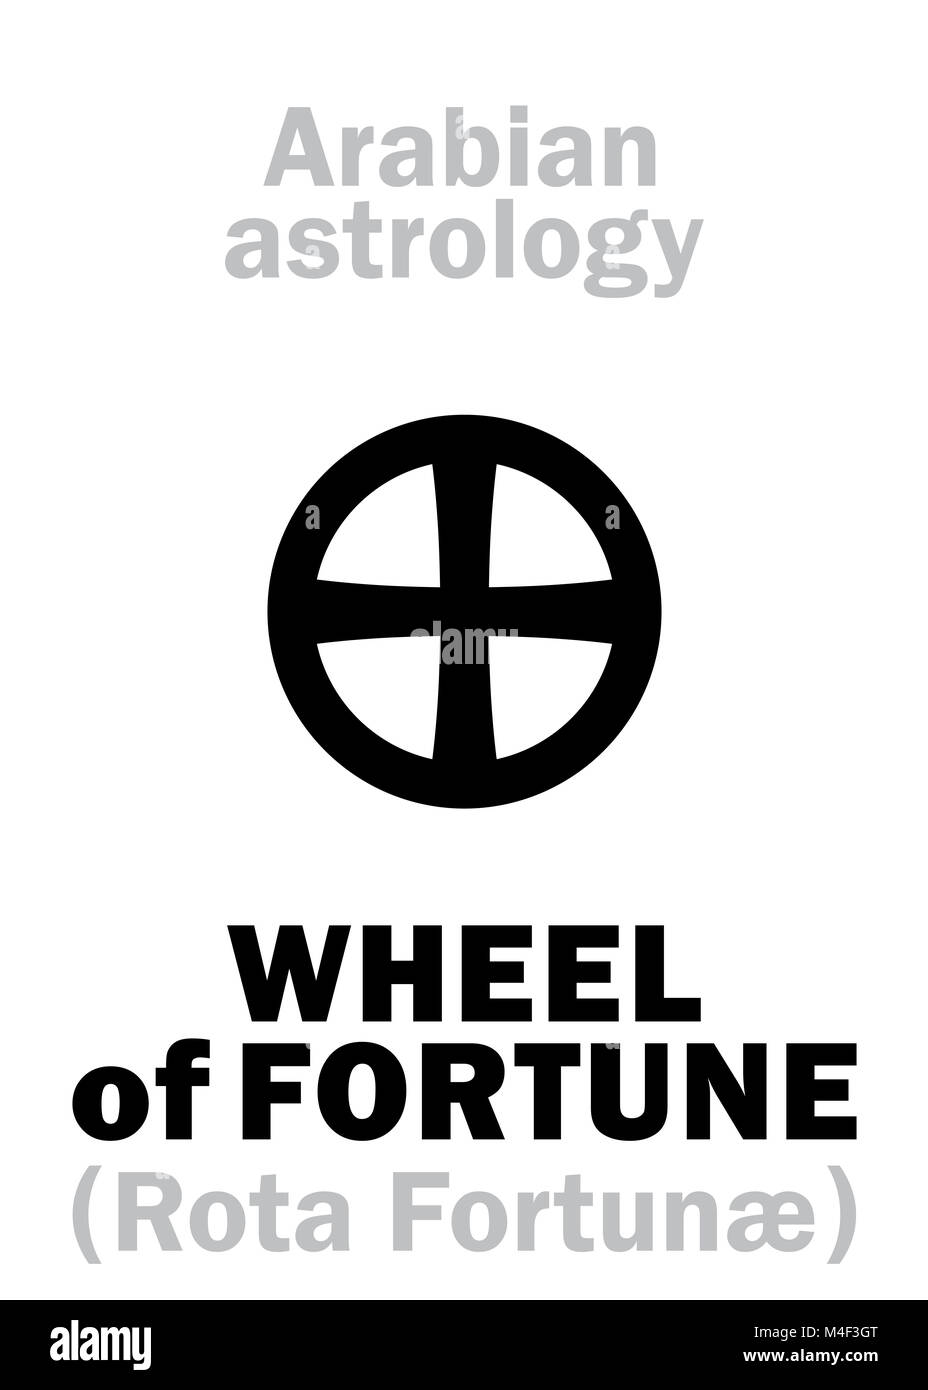 Astrology: WHEEL of FORTUNE - Stock Image